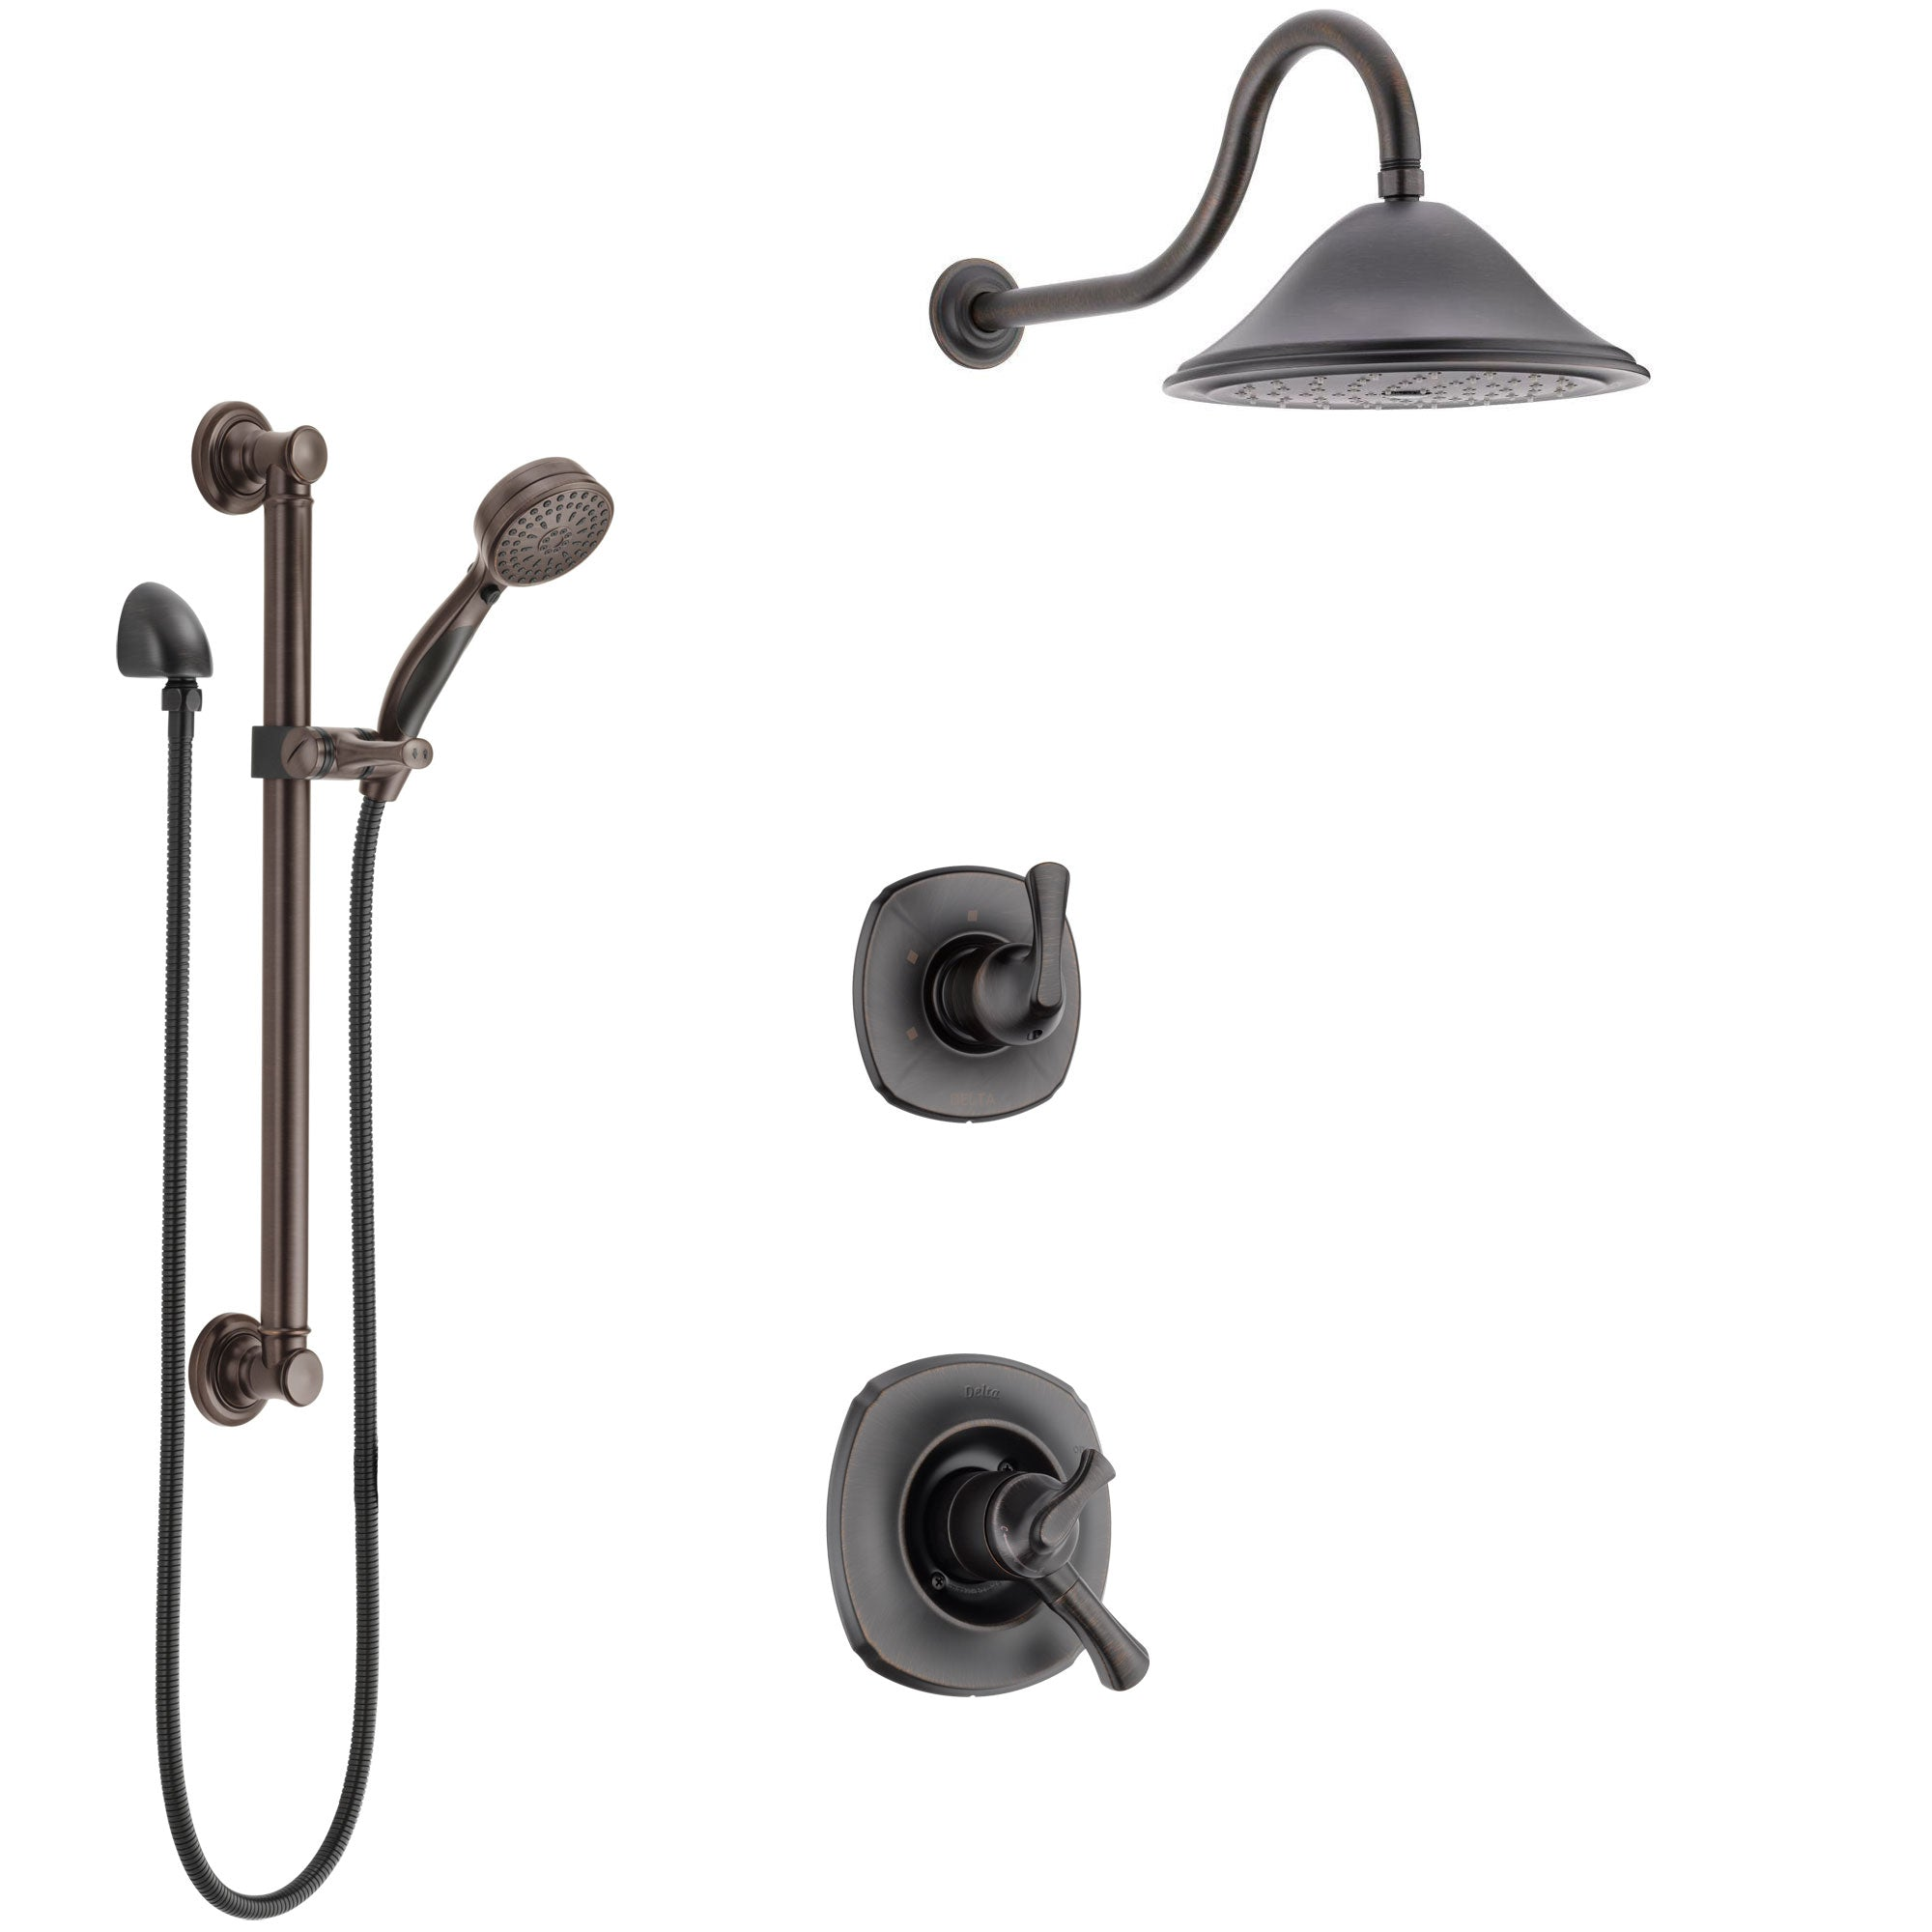 Delta Addison Venetian Bronze Finish Shower System with Dual Control Handle, 3-Setting Diverter, Showerhead, and Hand Shower with Grab Bar SS1792RB5